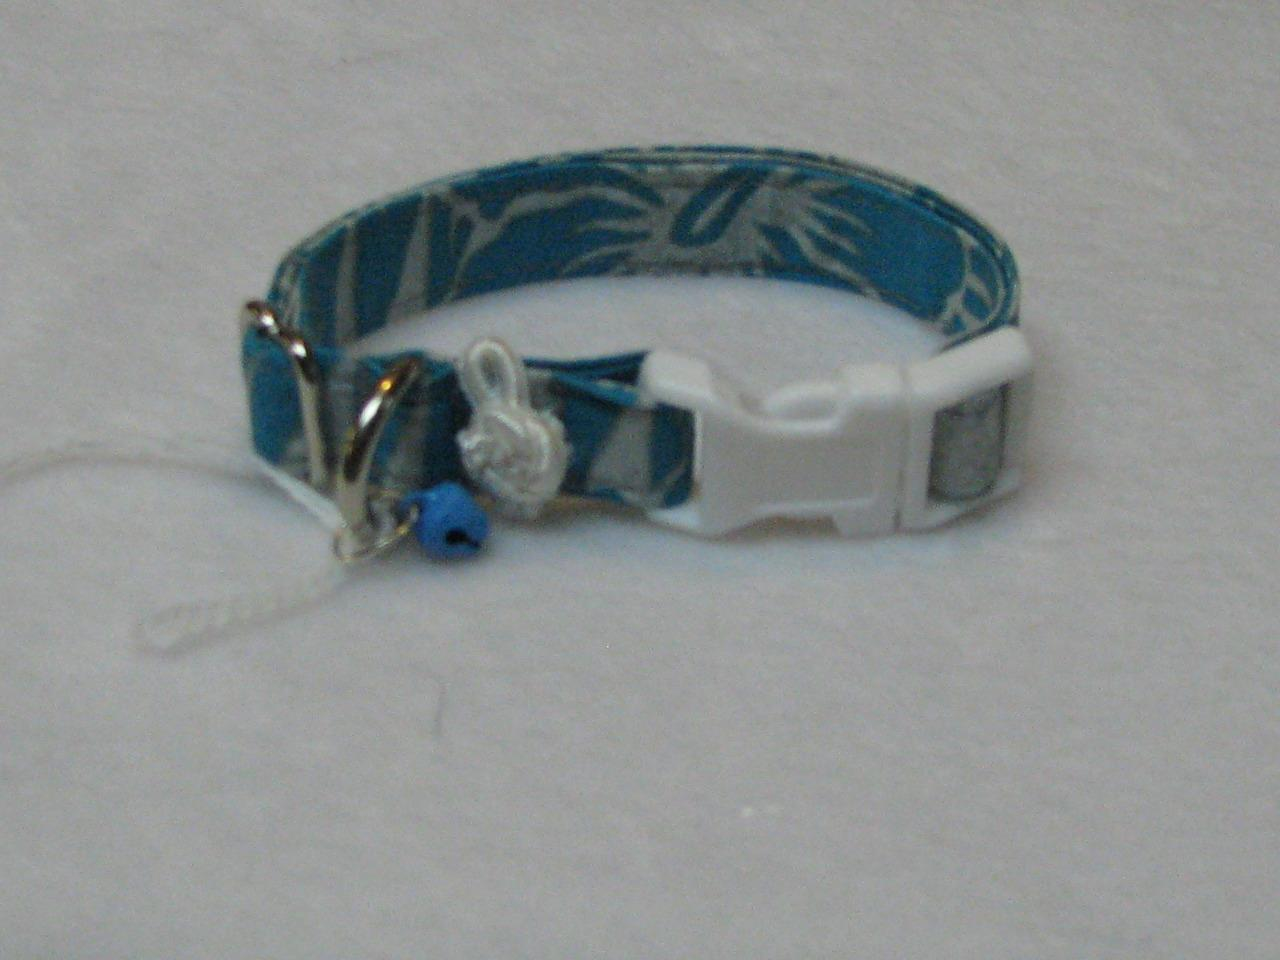 shih tzu collar silver with blue pet accessories xxs m dog collars maltese 6443